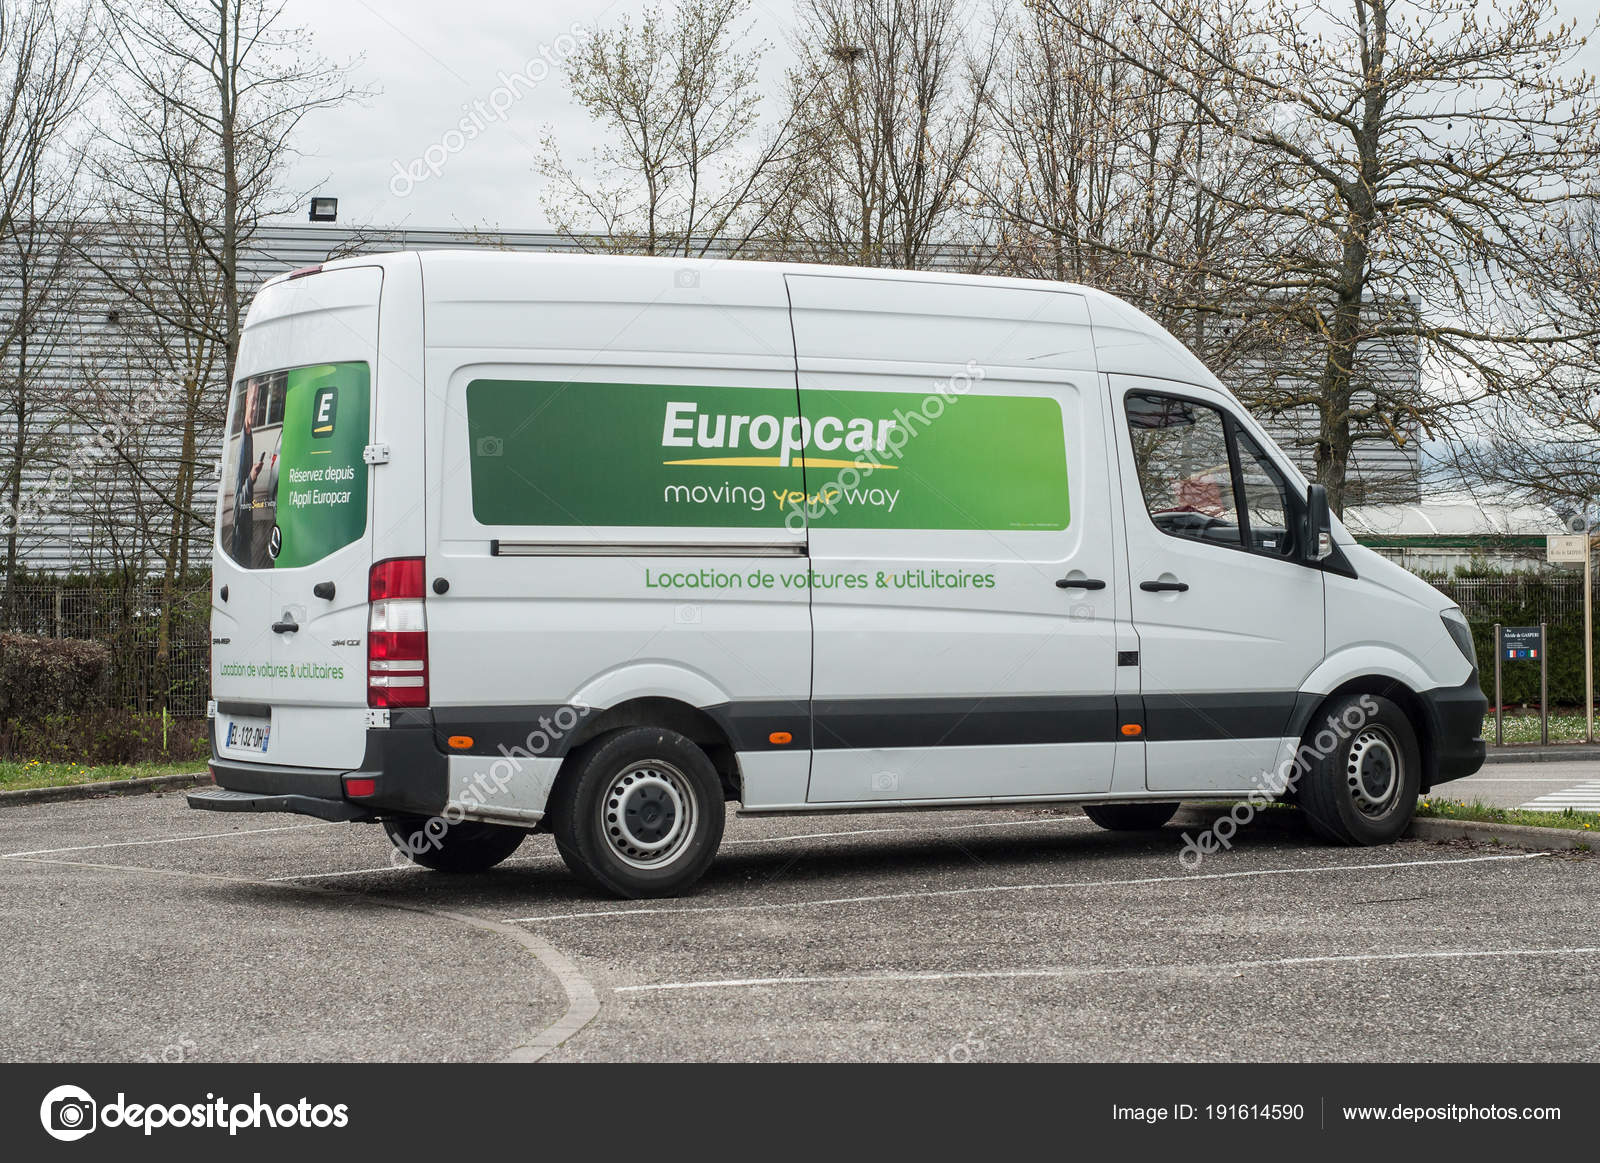 Europcar Truck Parked Europcar Is A Vehicle Rental Company With 365